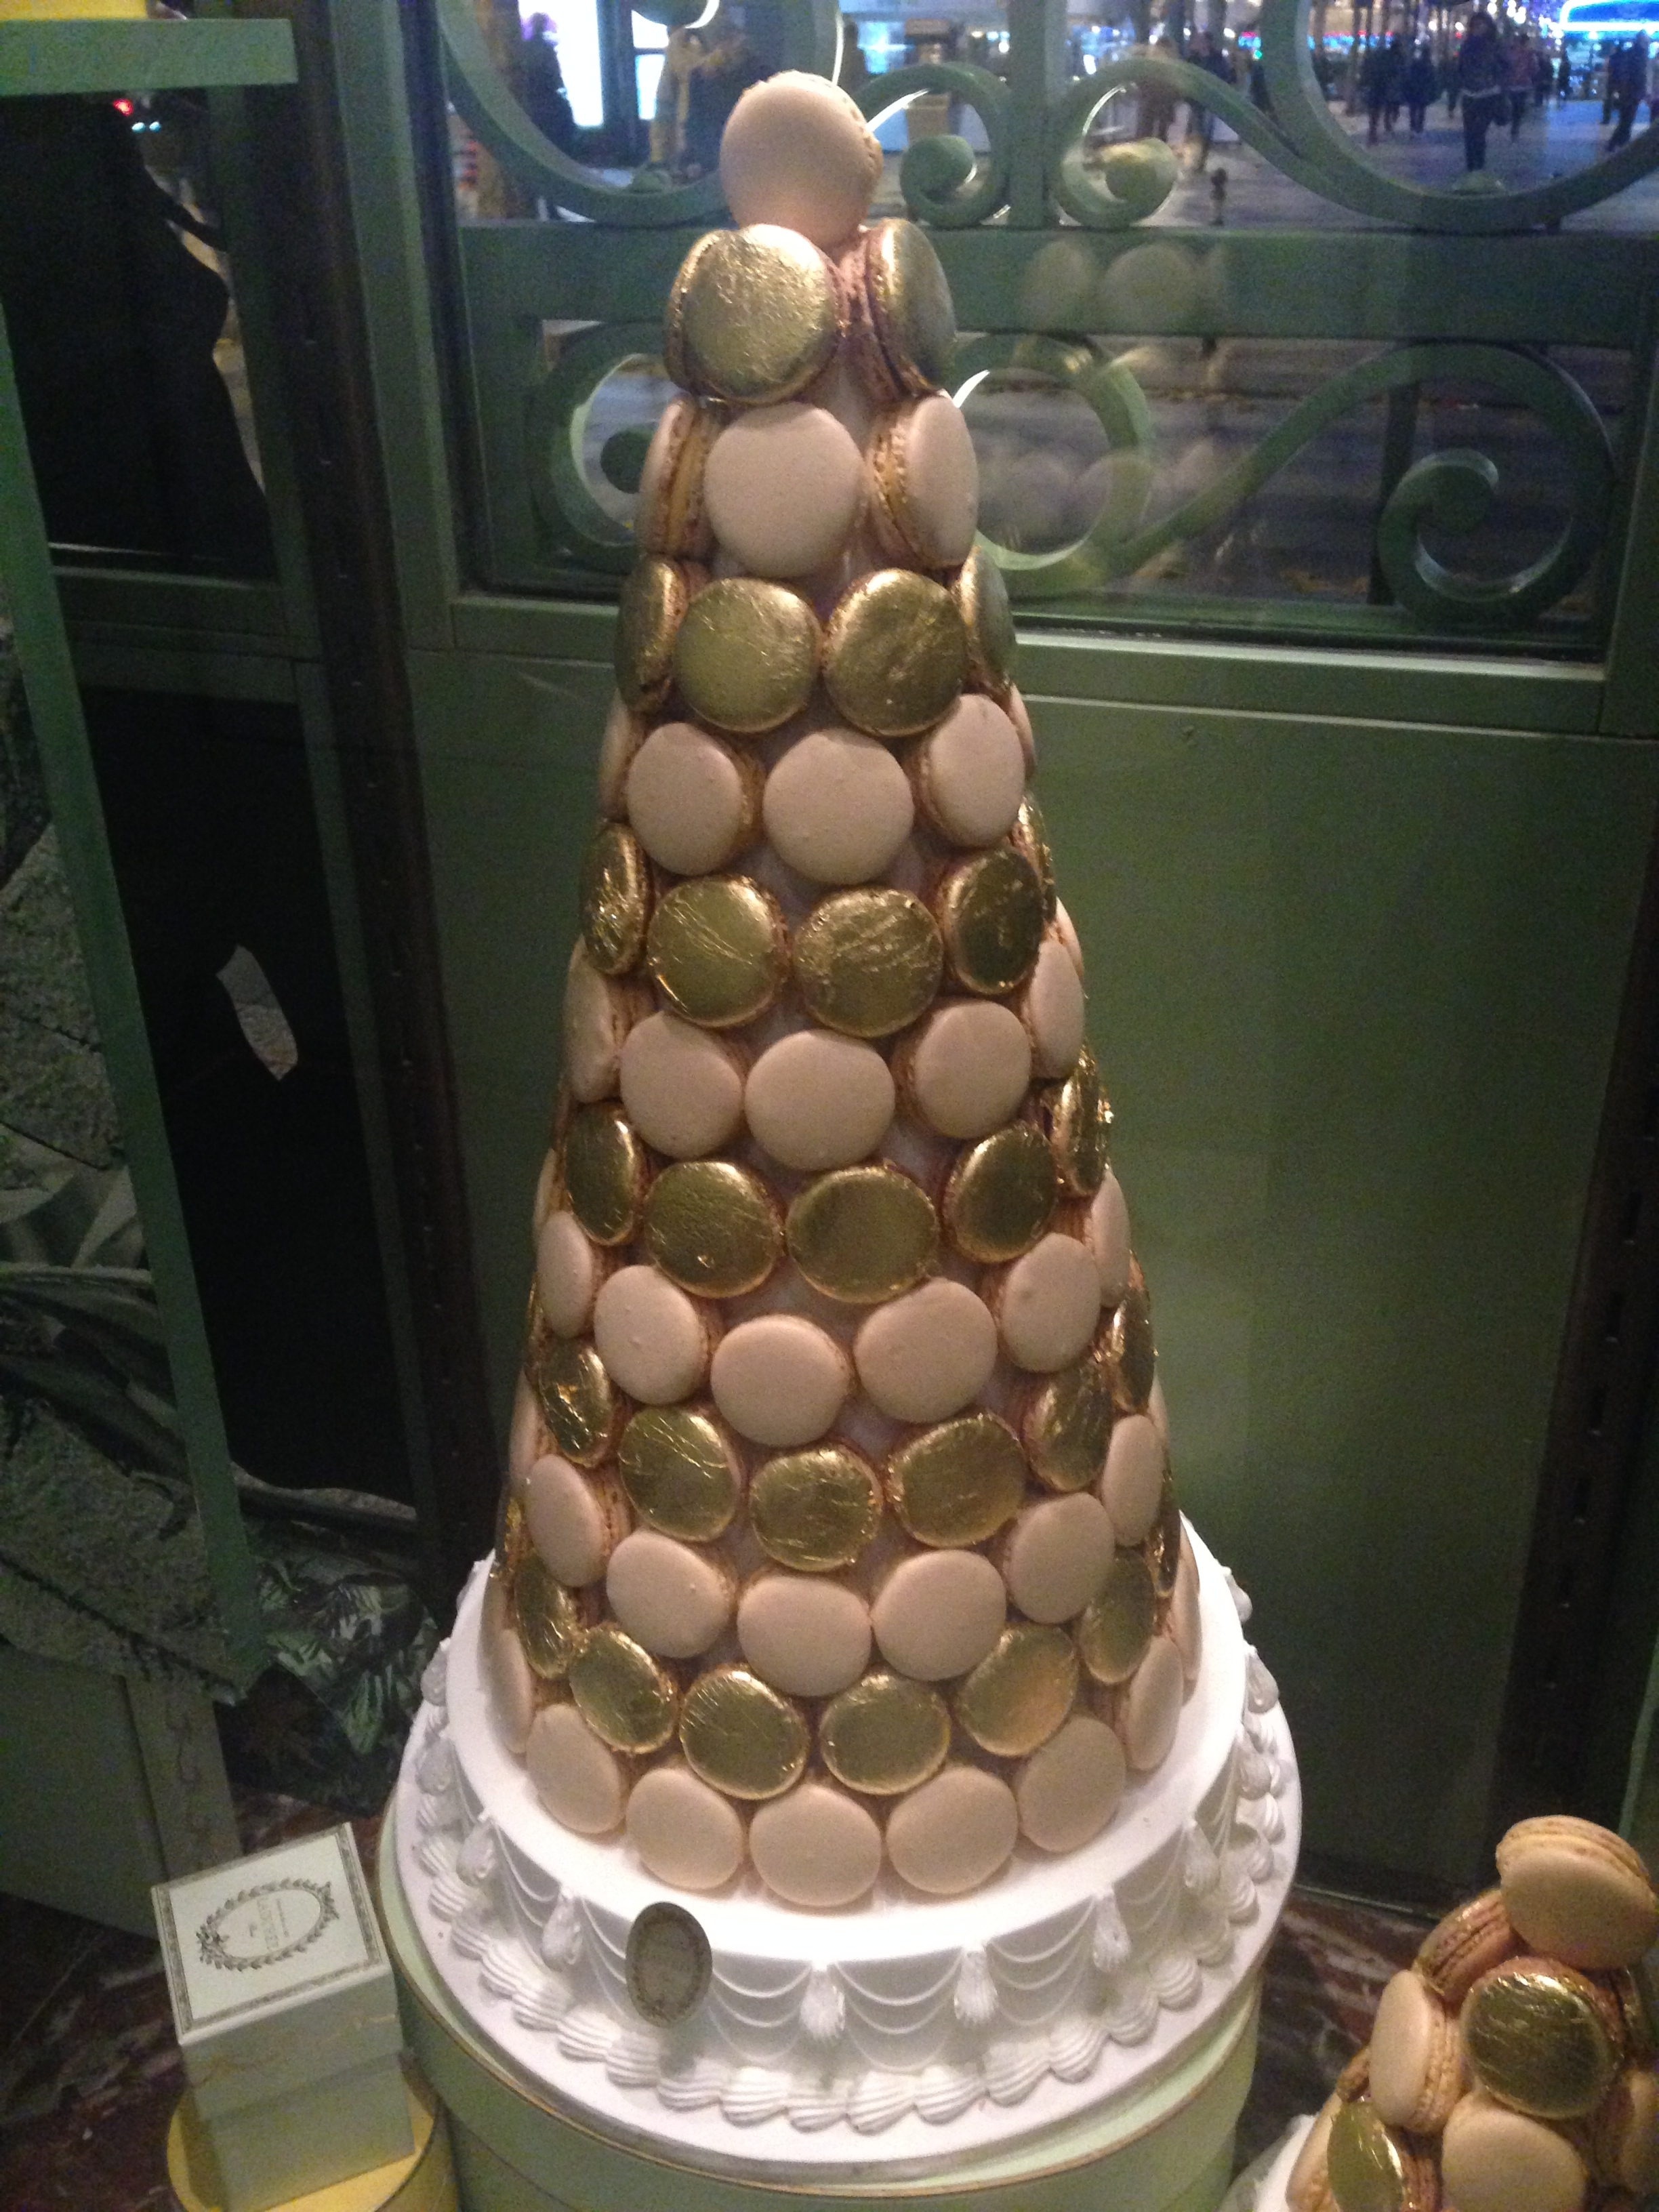 macaron tree at Laduree - the creators of the macaron as we know it - and definitely the best ones I've ever had